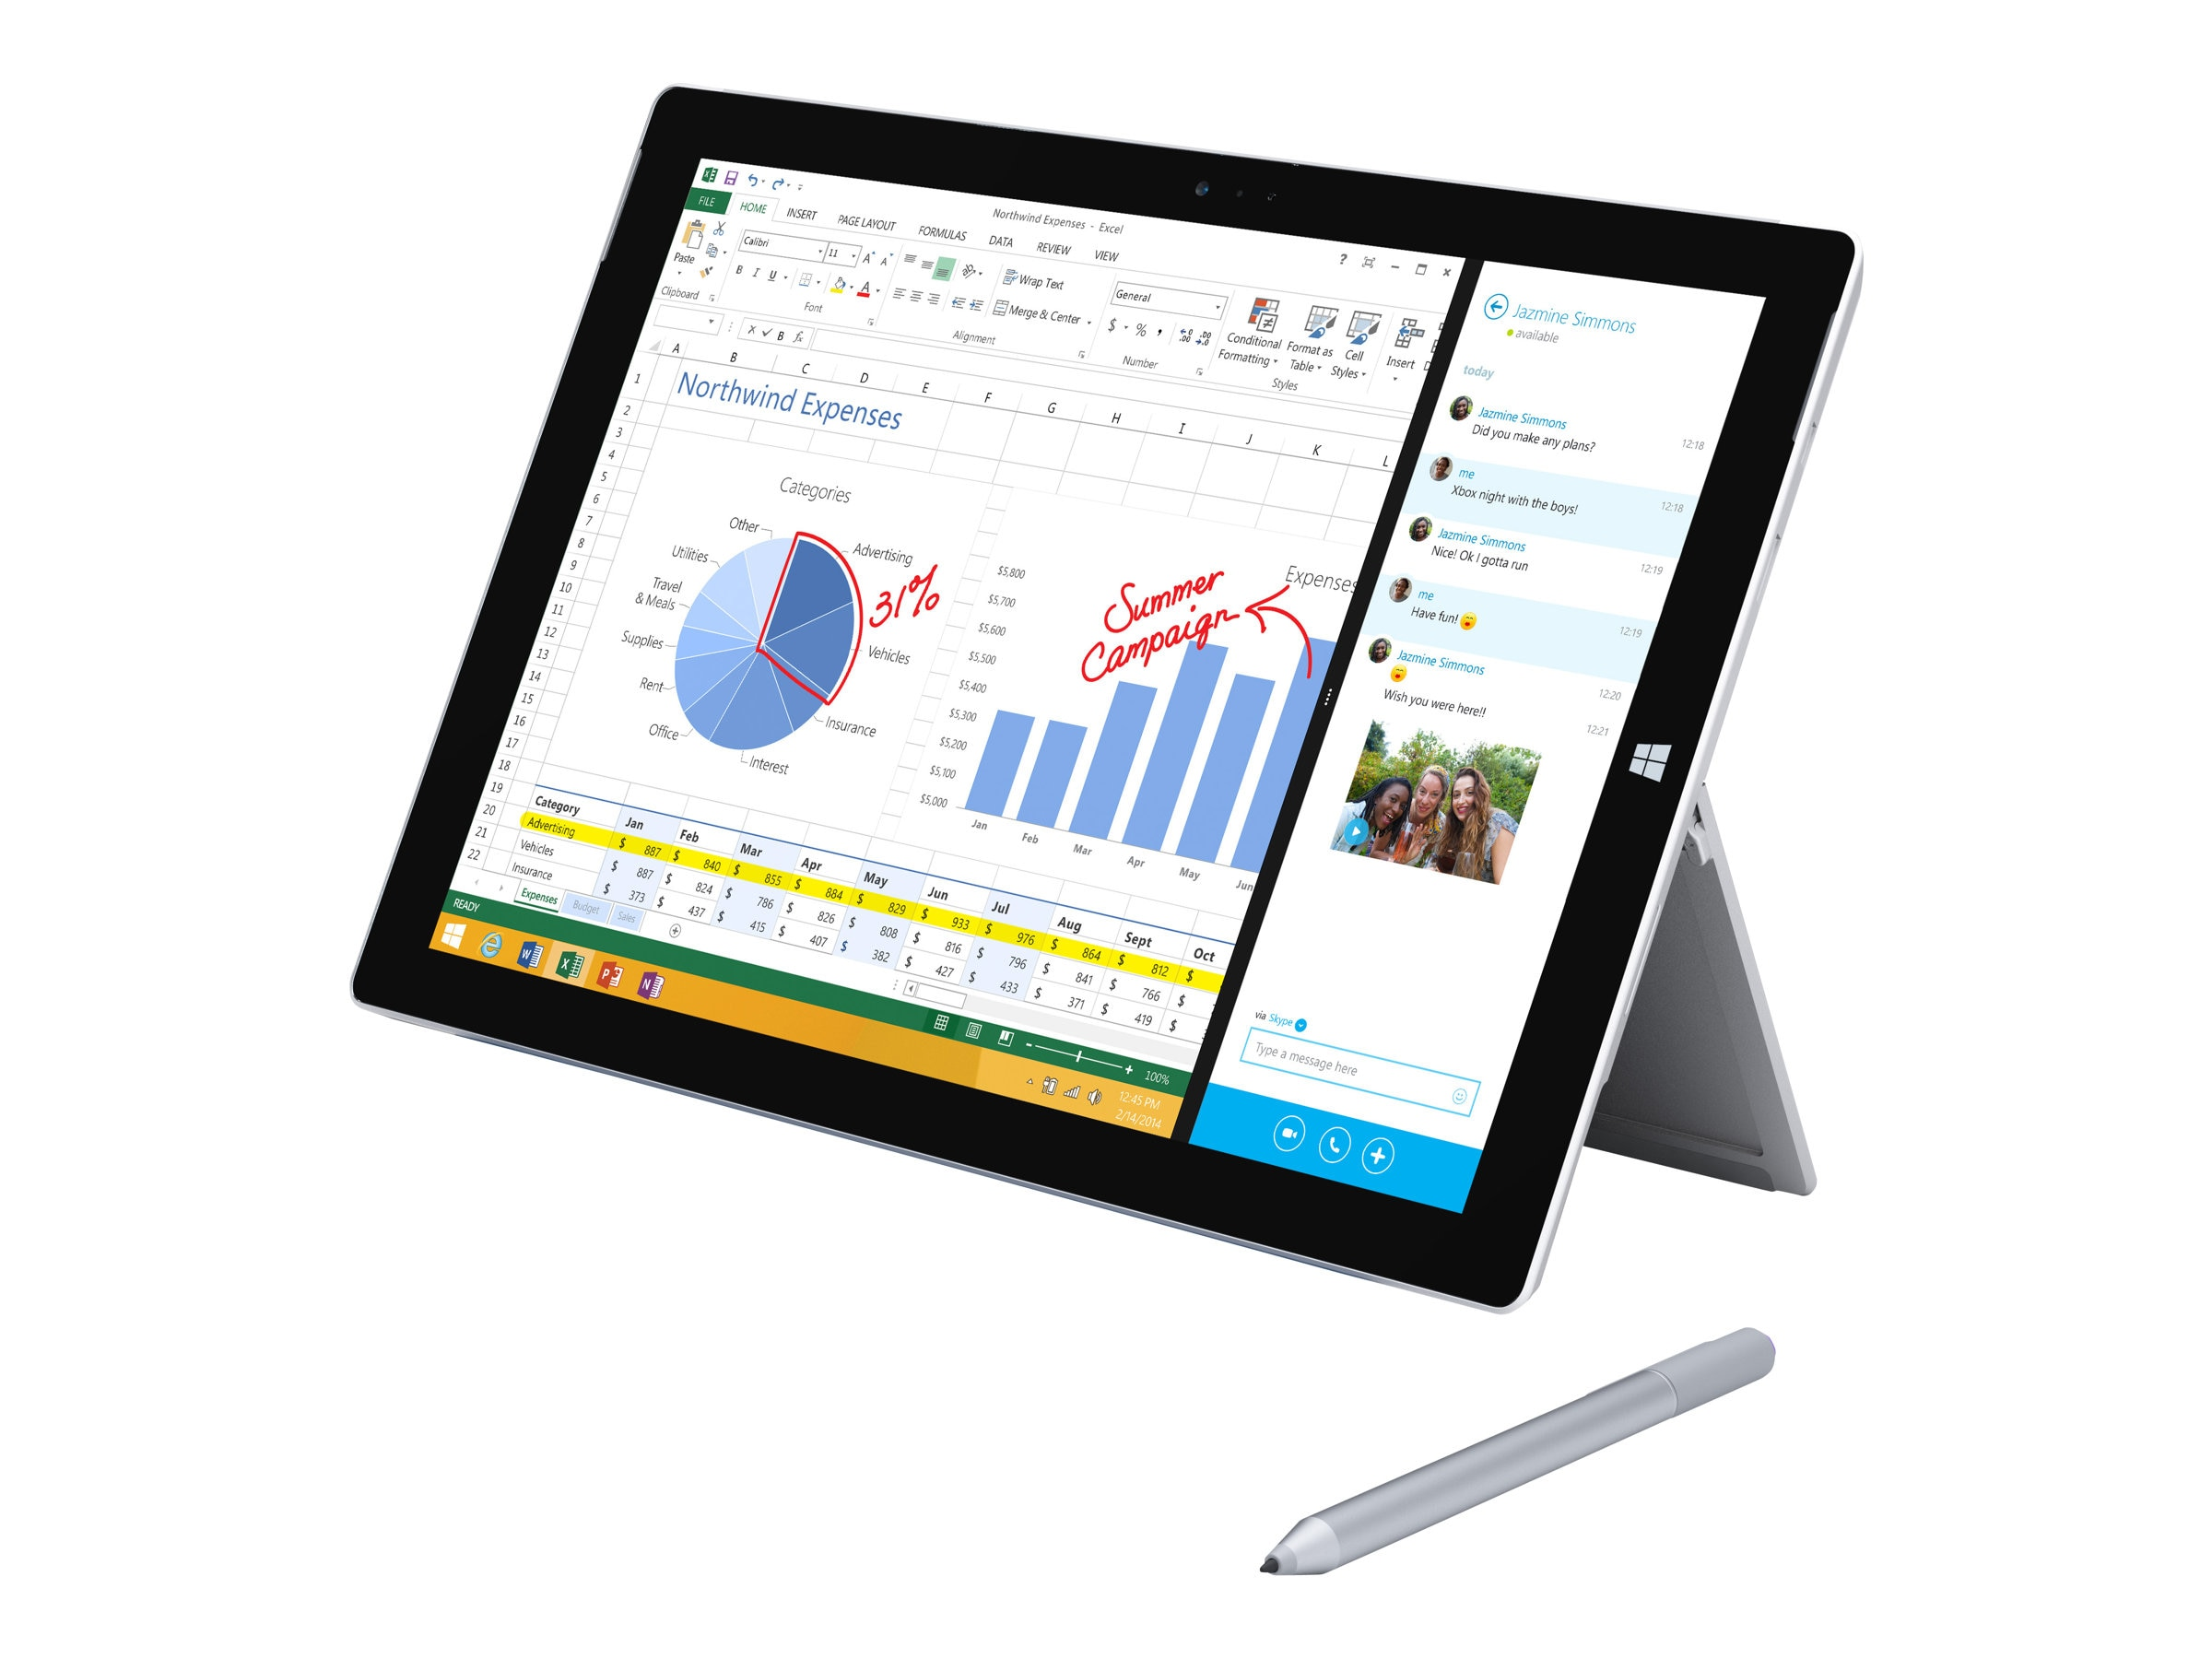 Microsoft Surface Pro 3 Tablet Core i5 4GB 128GB acabgn BT 2xWC 12 FHD+ MT W8.1P, QF2-00001, 17381671, Tablets